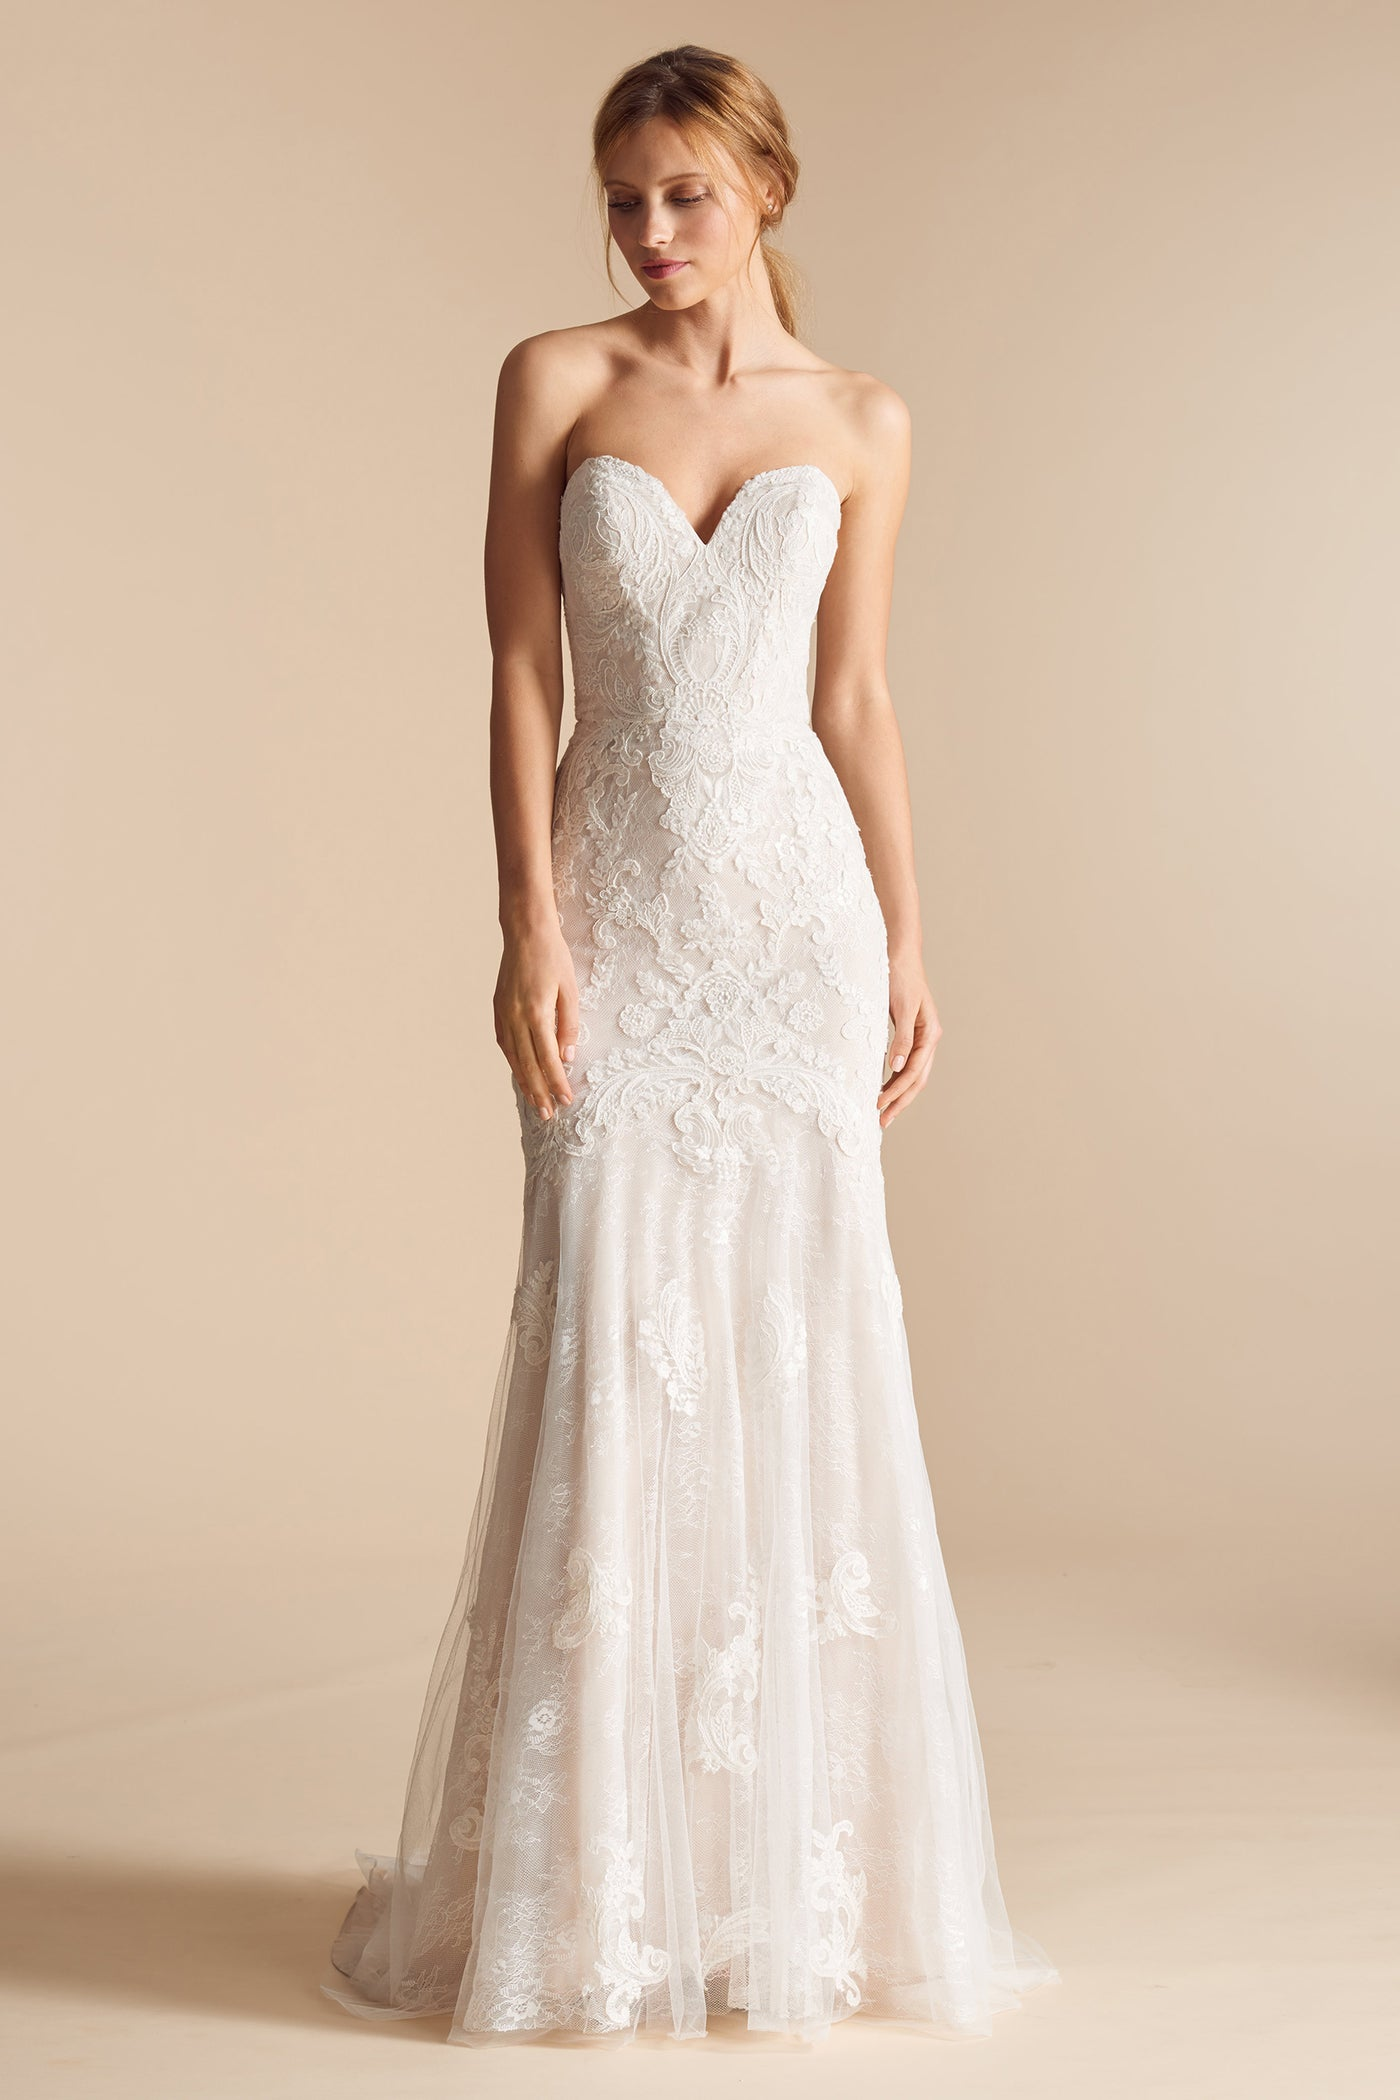 Naomi, Gown, Ti Adora by Allison Webb - Eternal Bridal